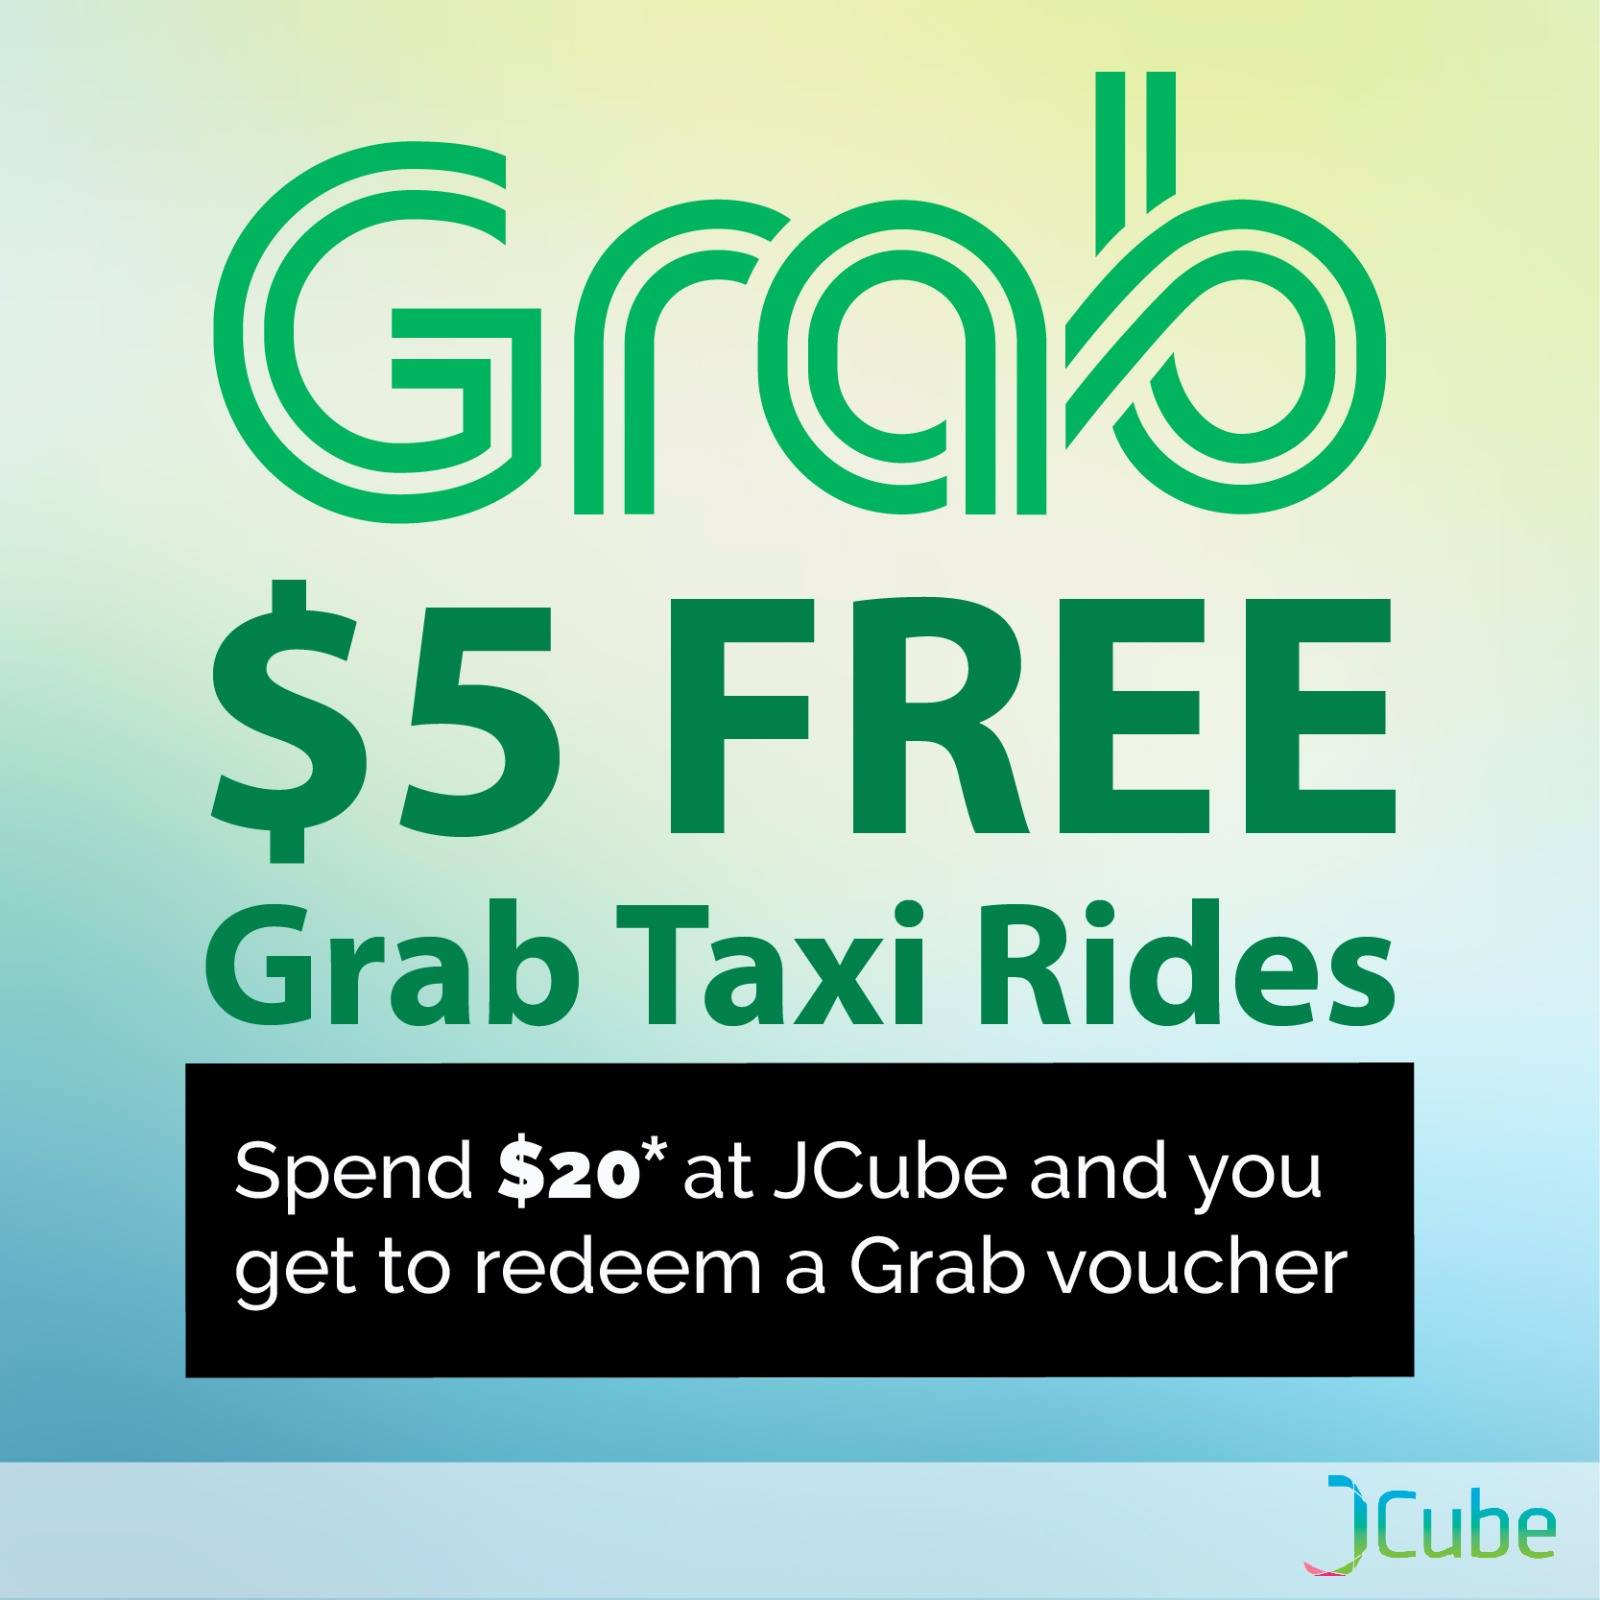 JCube Singapore is giving away $5 FREE GrabTaxi Rides Voucher | Why Not Deals & Promotions